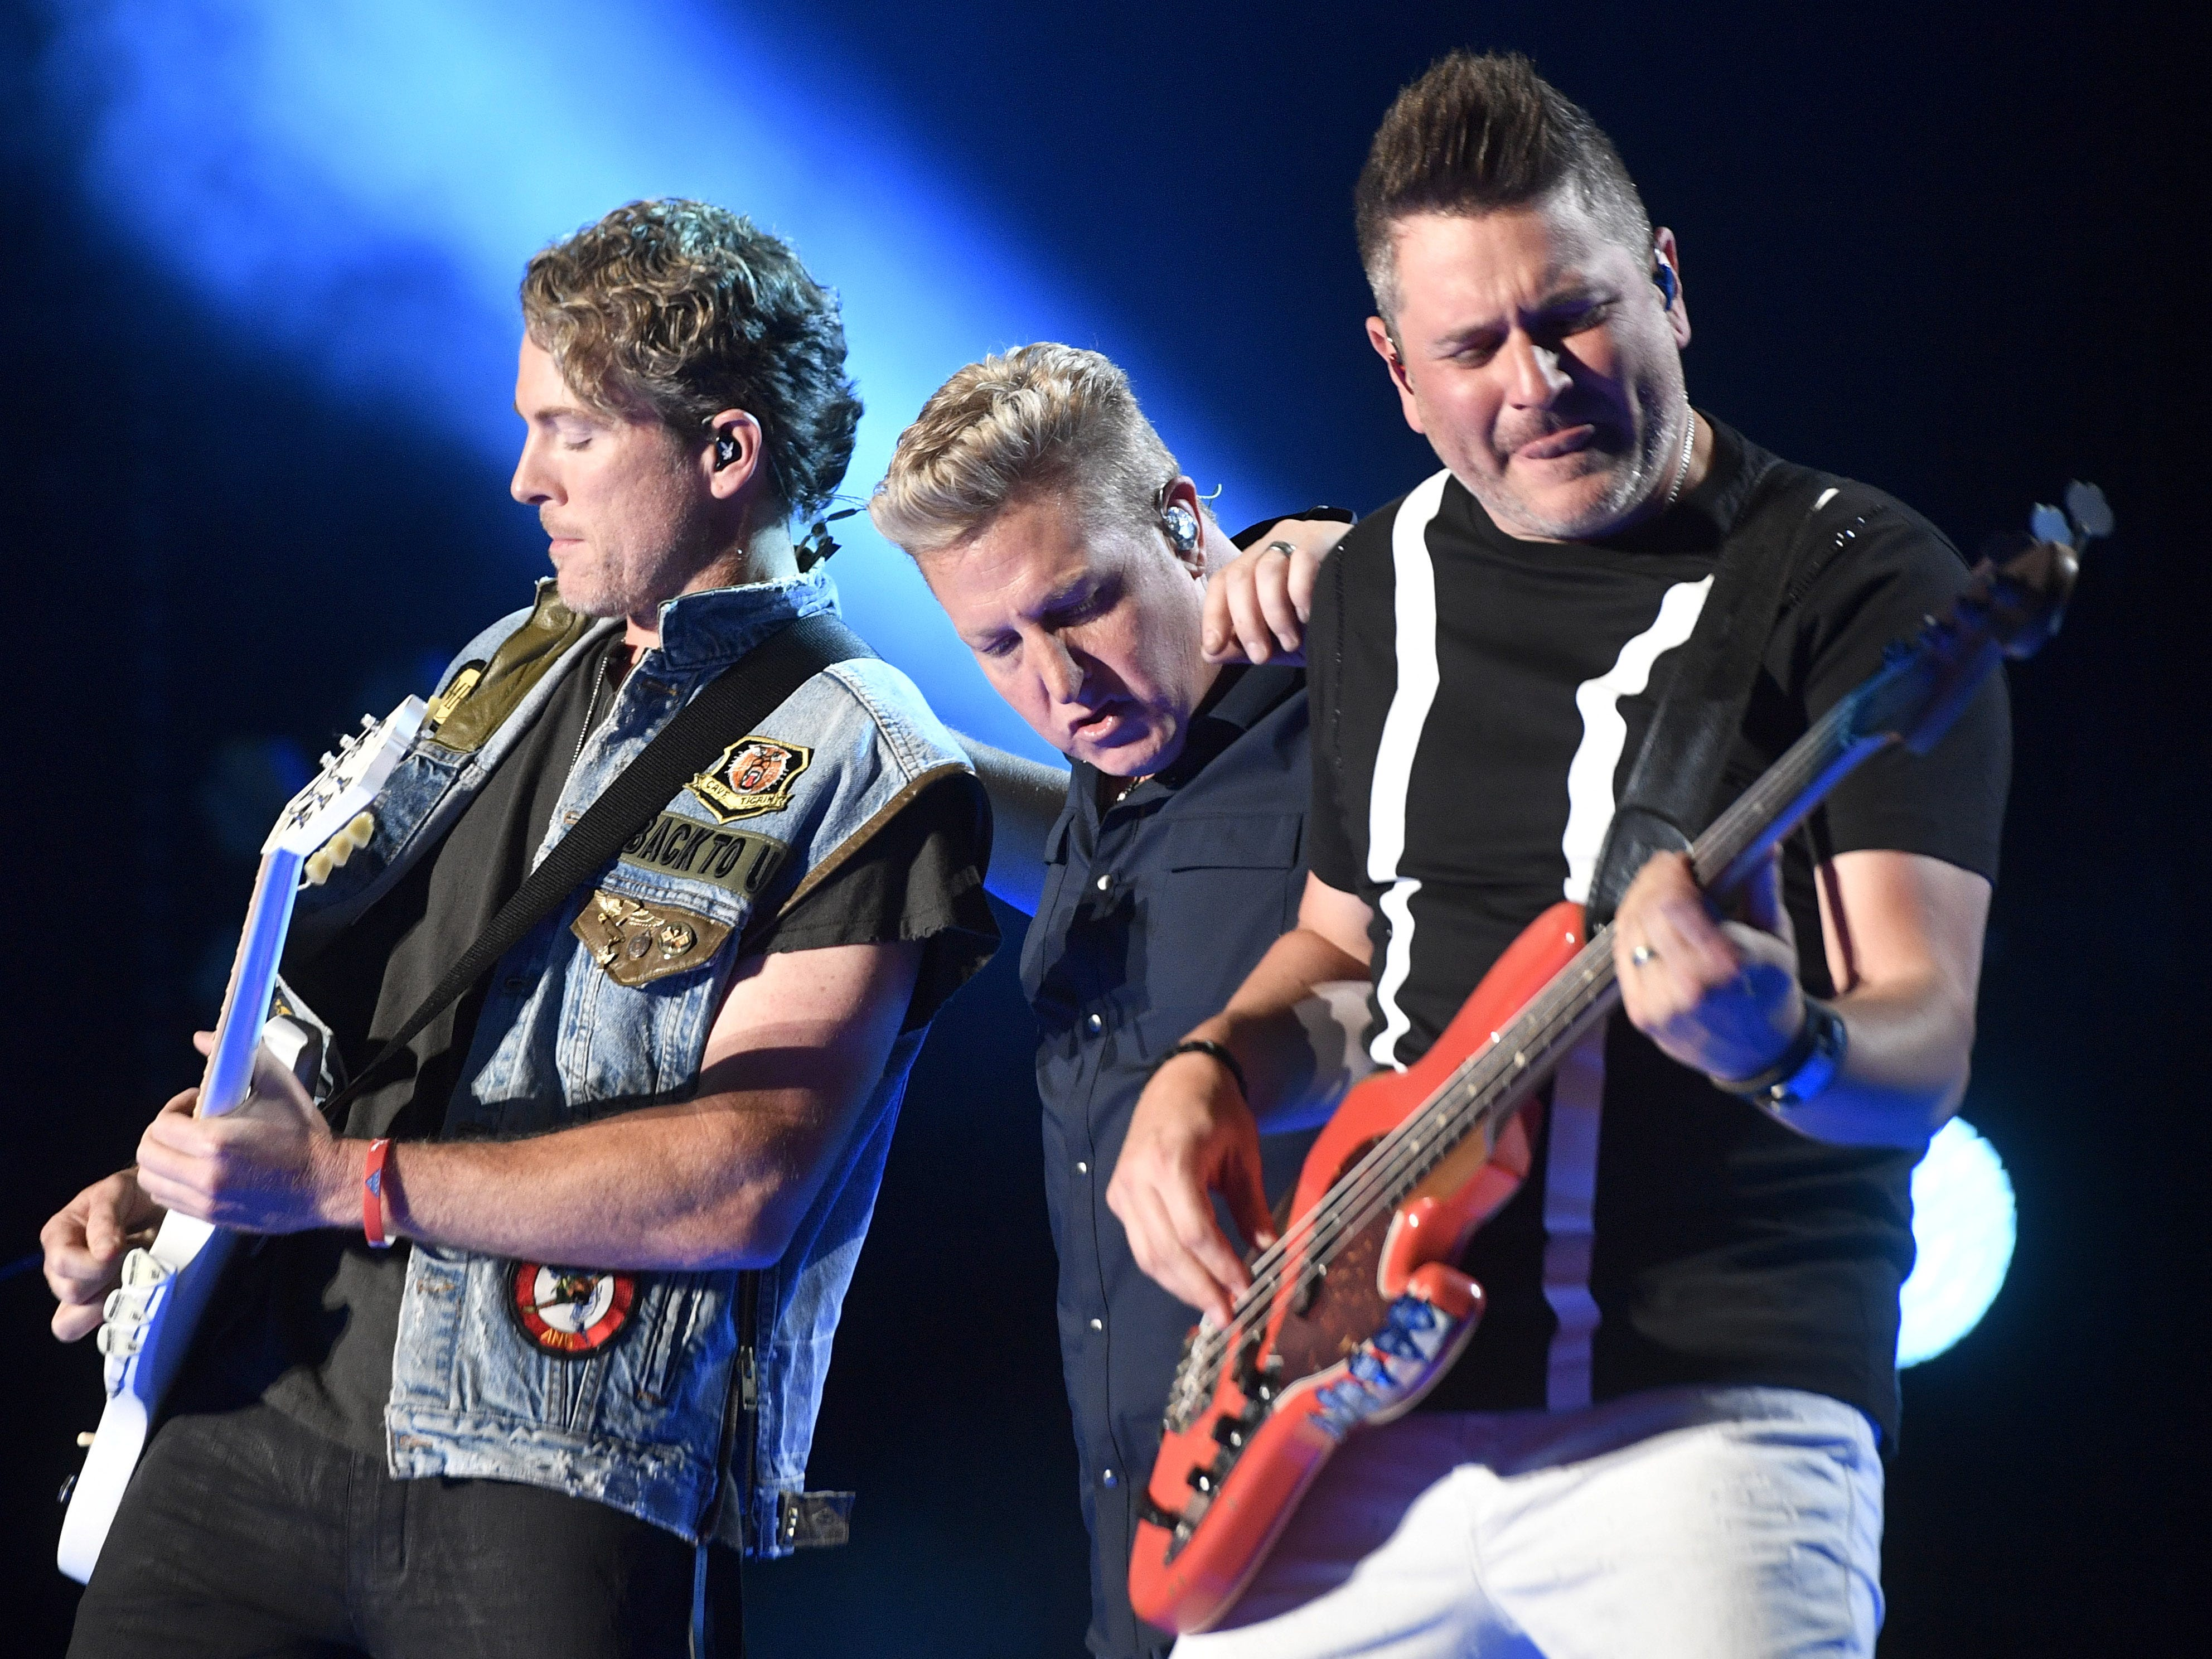 Rascal Flatts are scheduled to play Nissan Stadium during CMA Fest 2019.